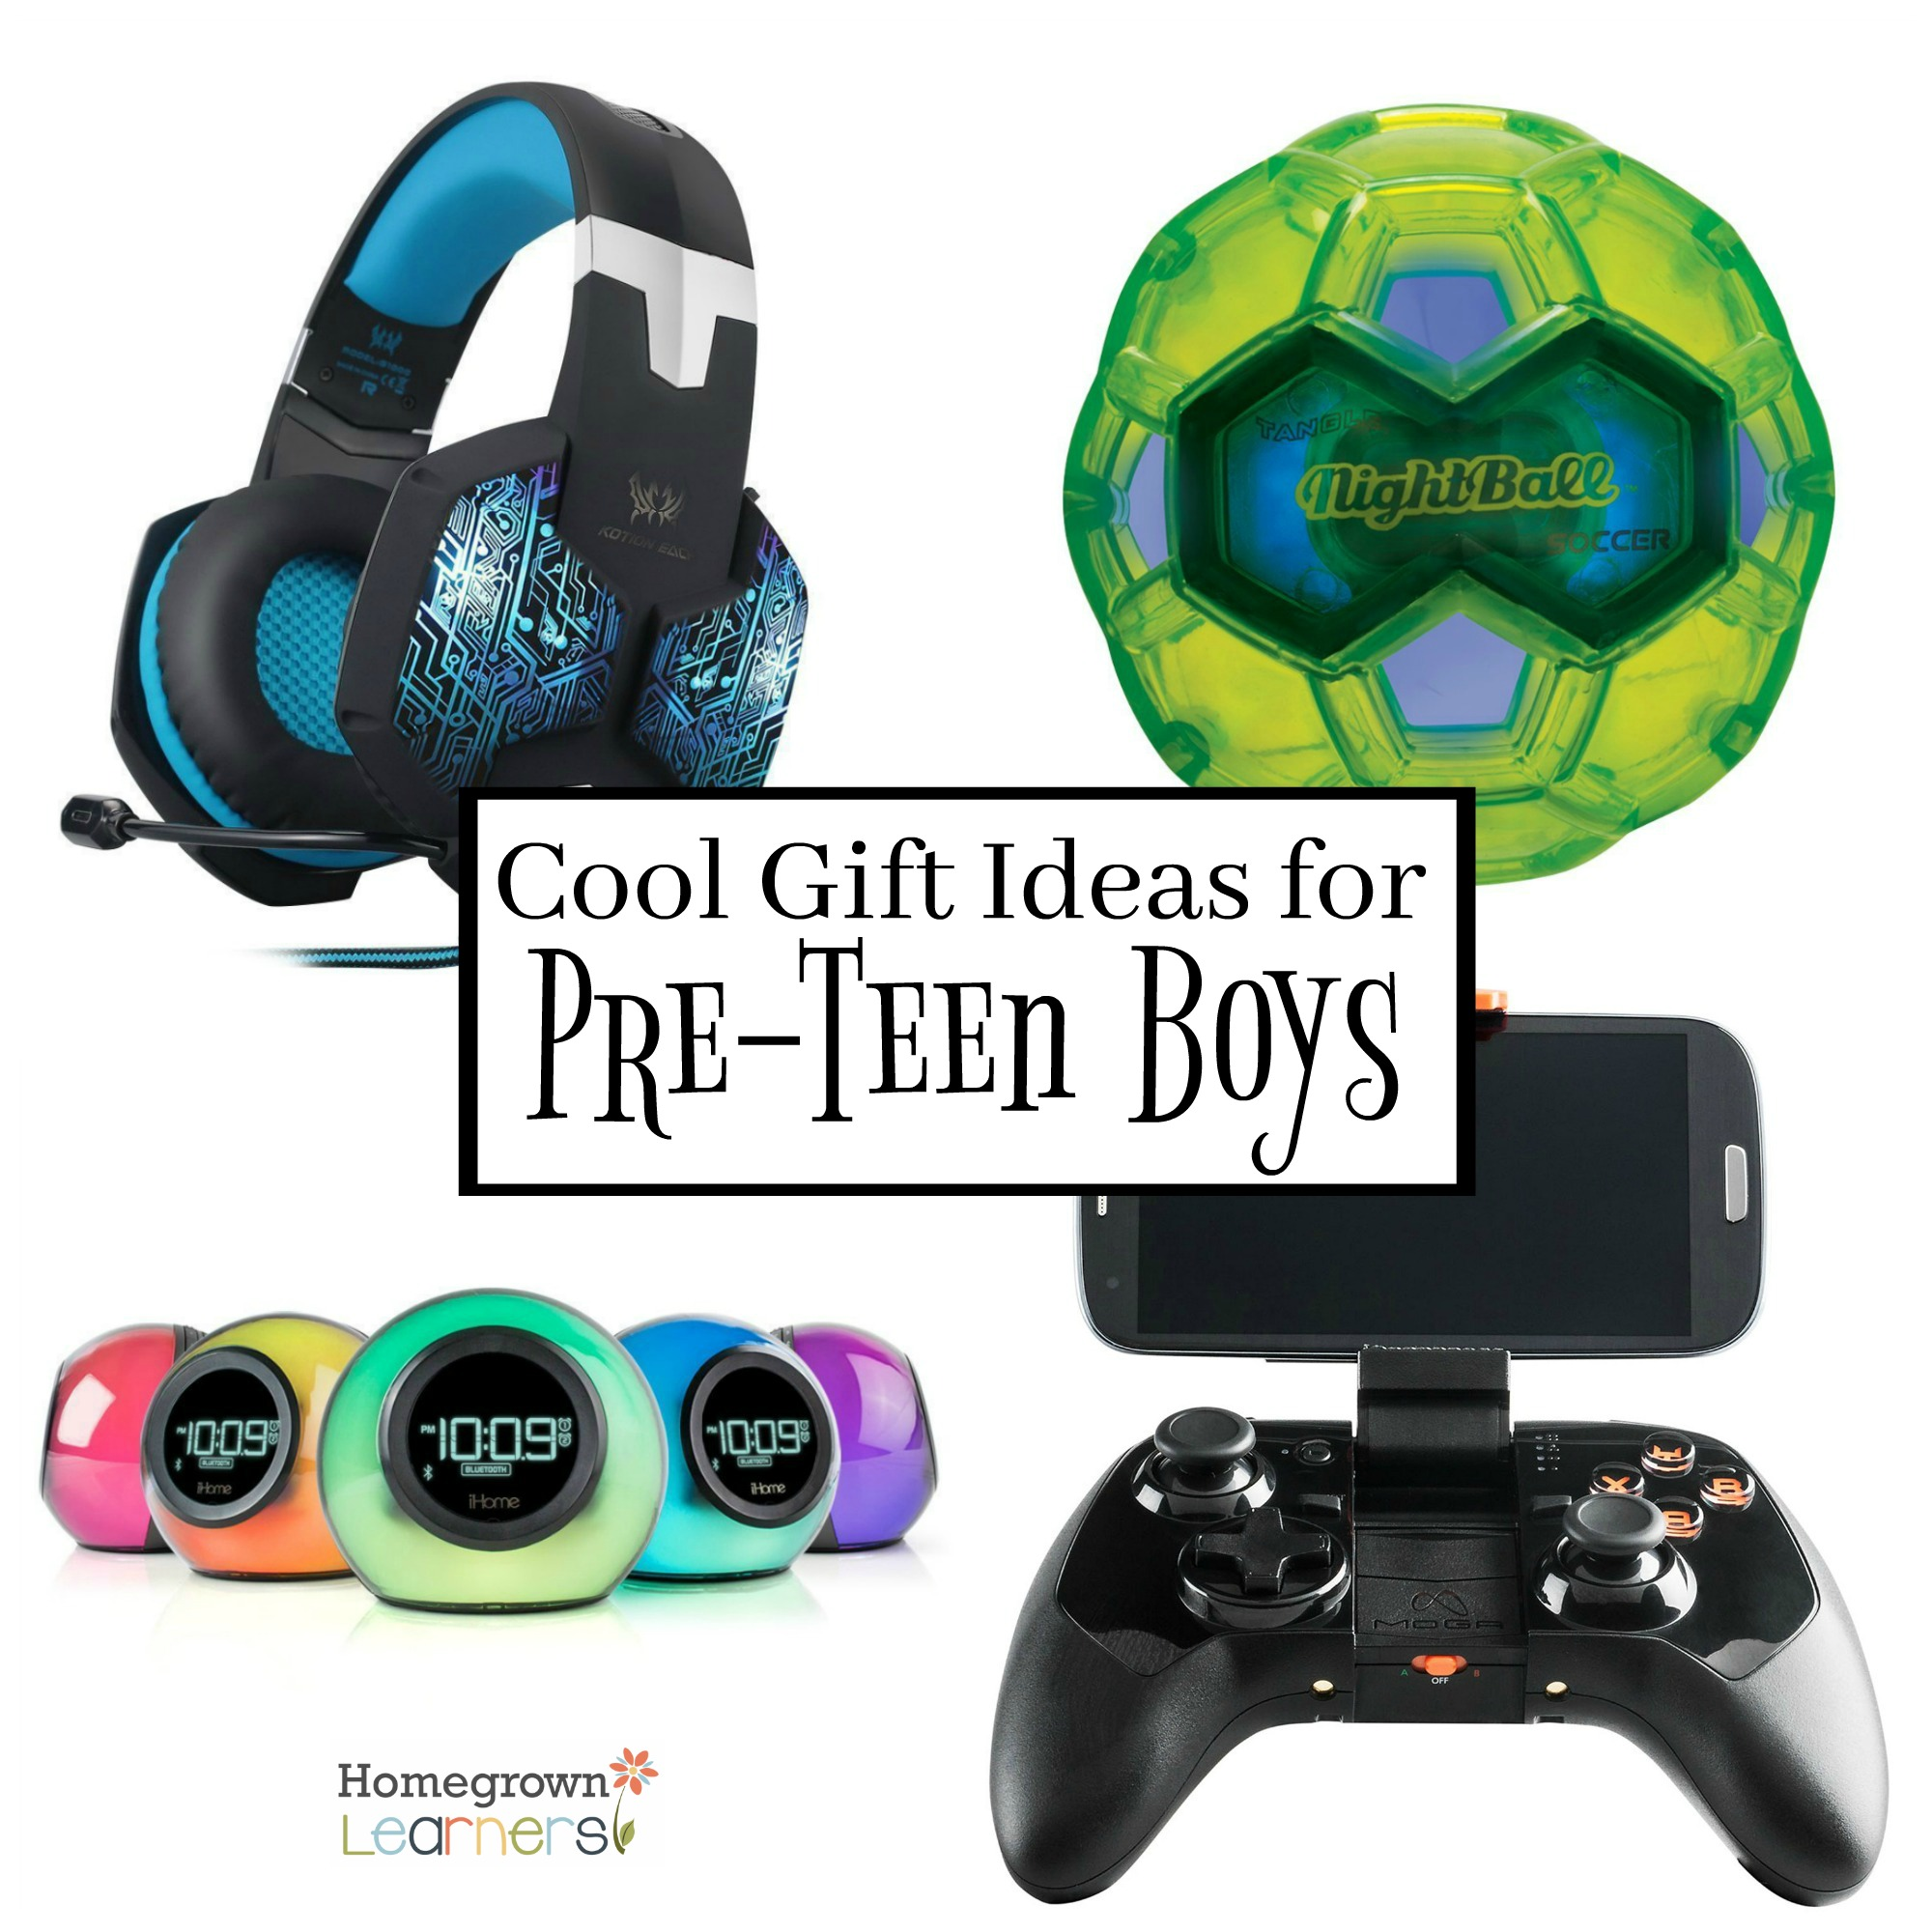 Cool Gift Ideas for Pre-Teen Boys